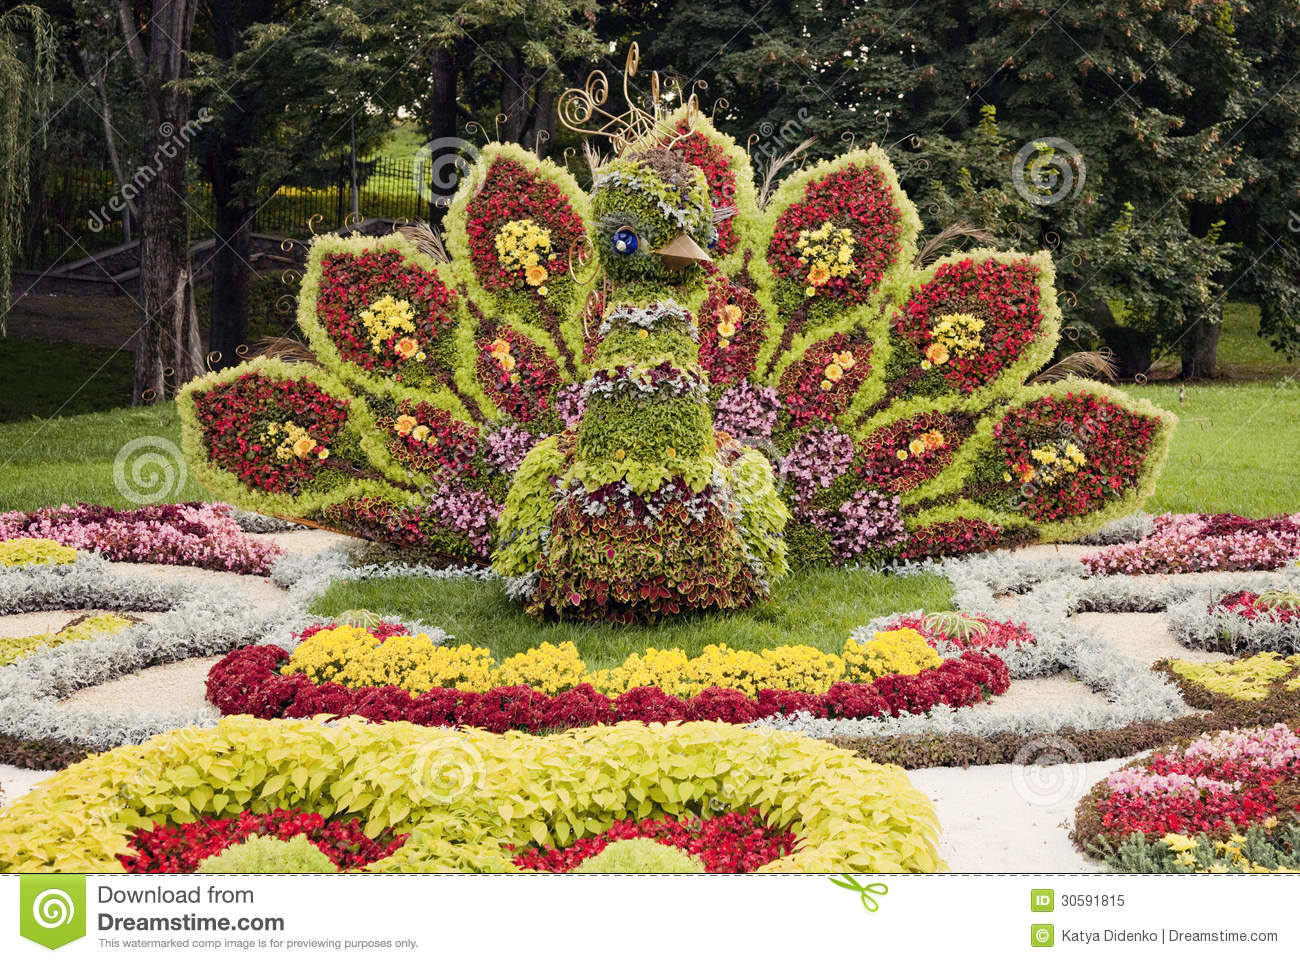 Bright colorful peacock flower sculpture flower show in ukraine bright colorful peacock flower sculpture flower show in ukraine 2012 izmirmasajfo Choice Image